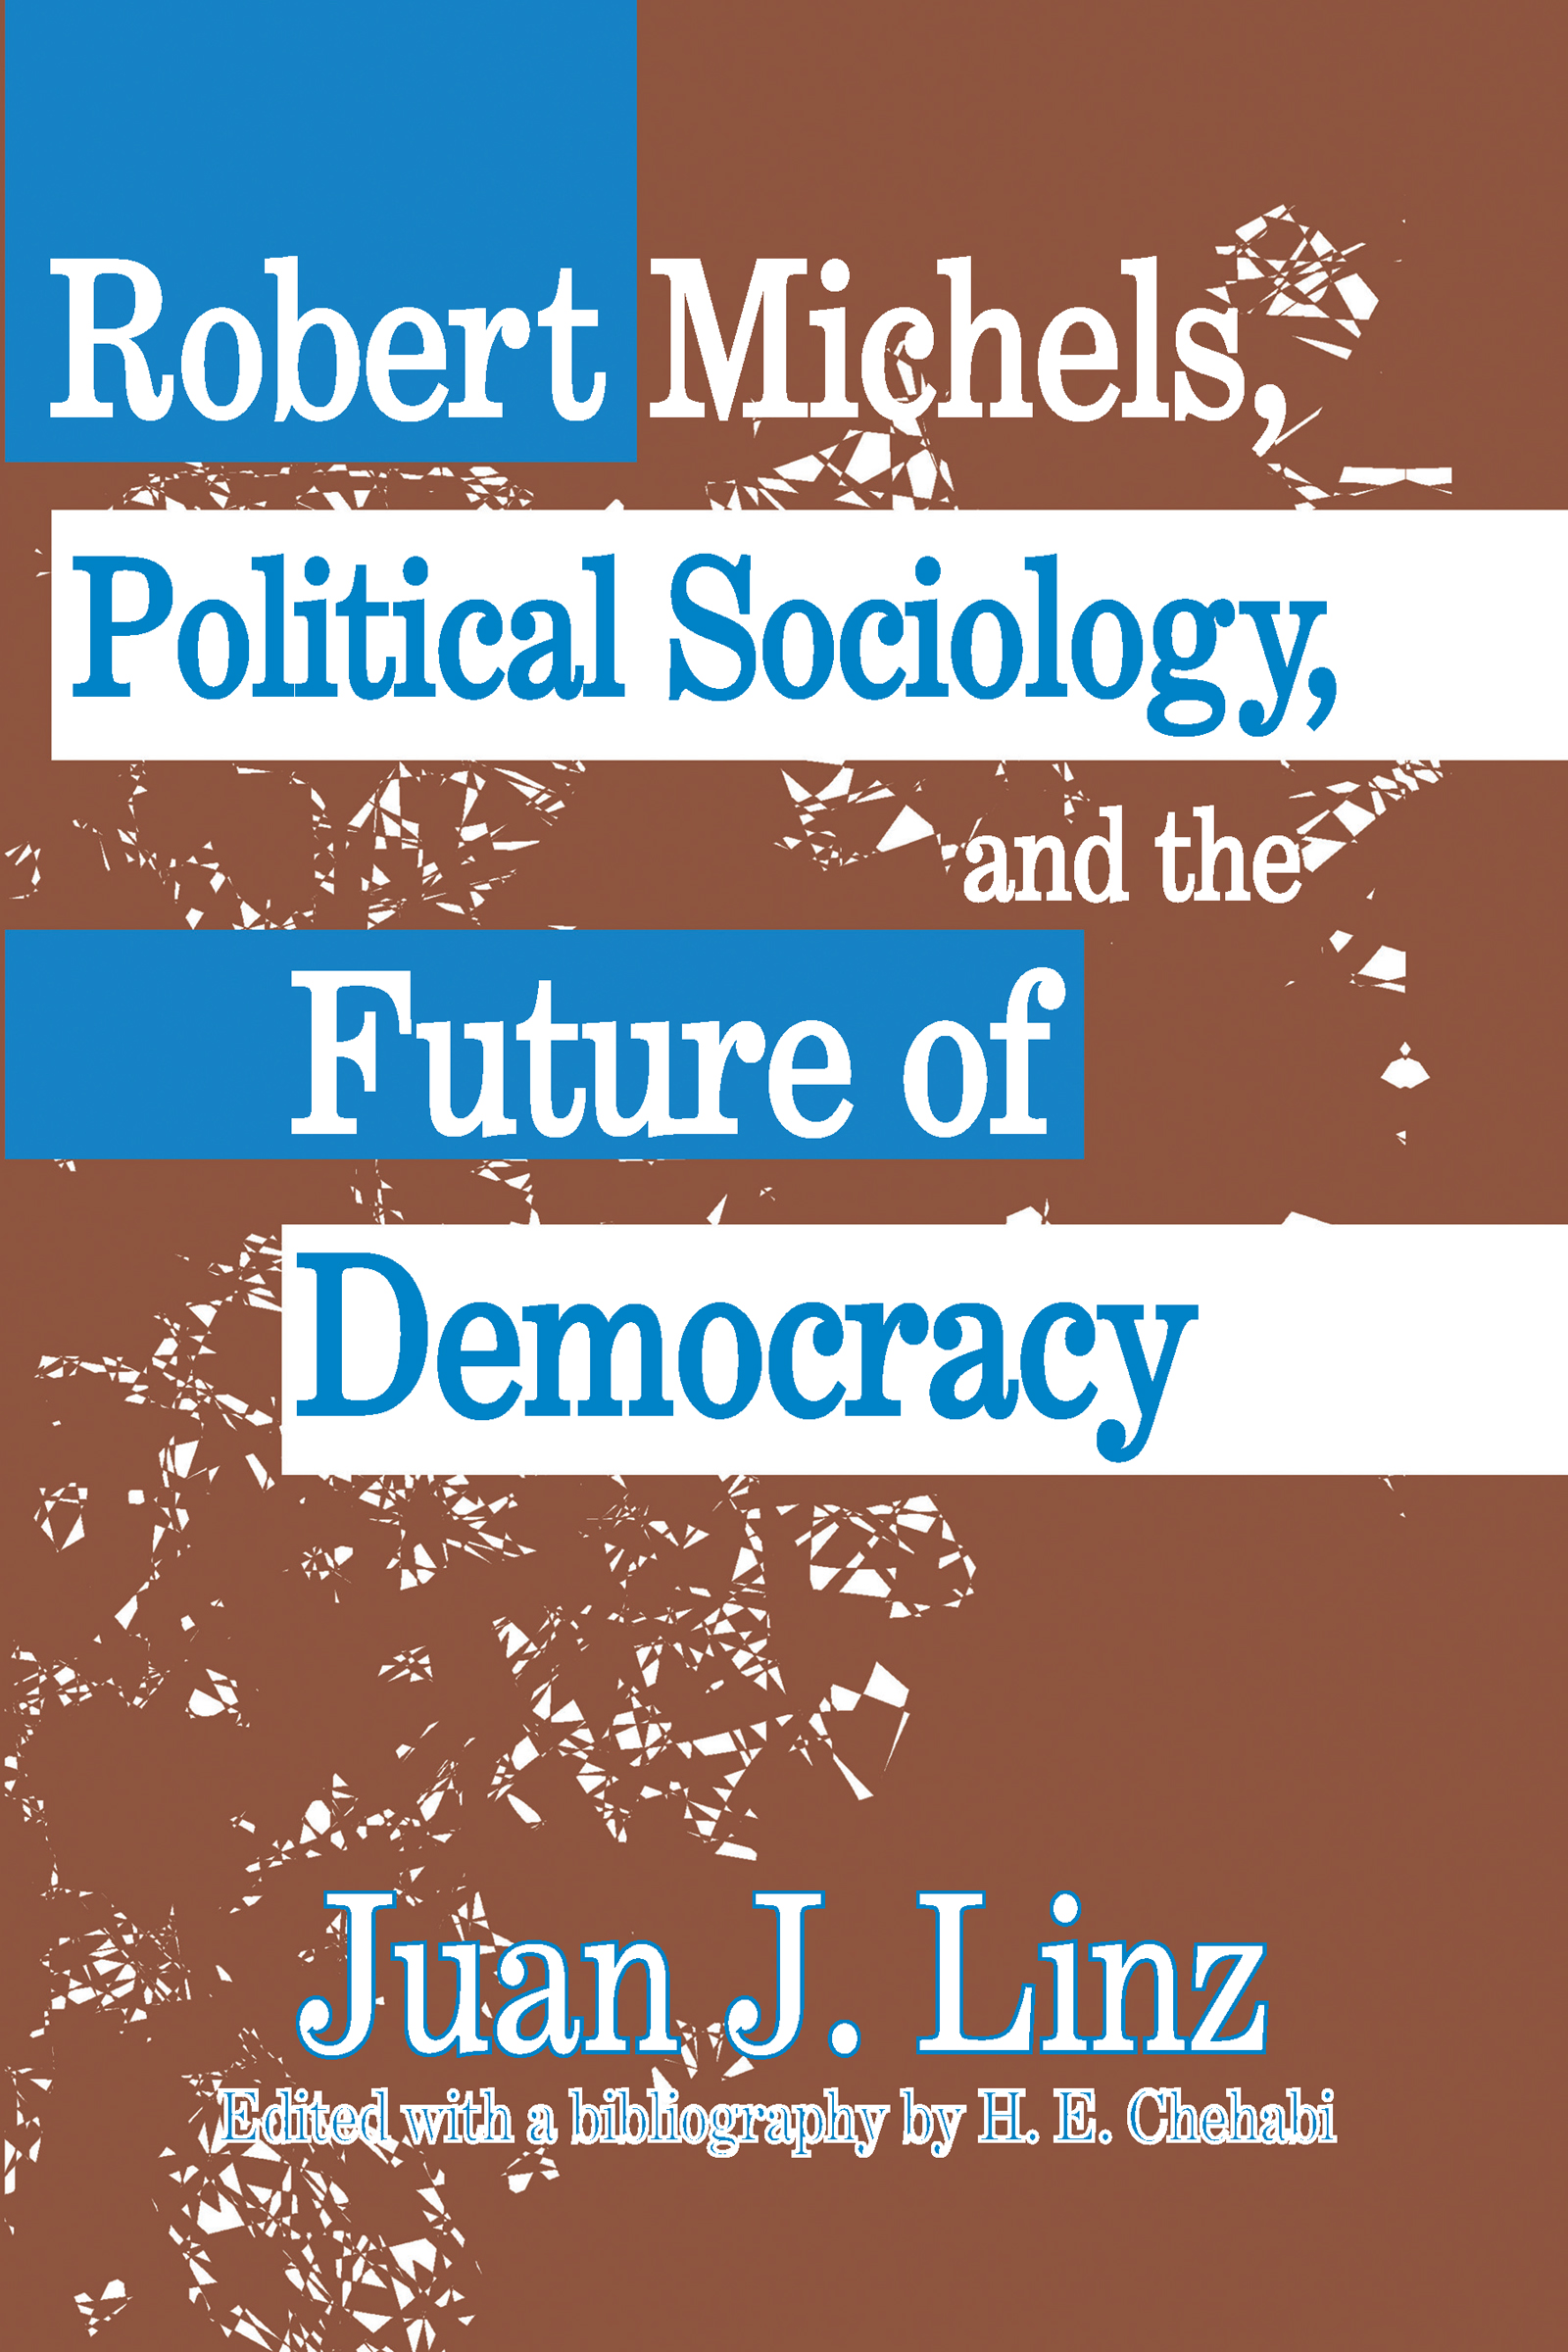 Robert Michels, Political Sociology and the Future of Democracy